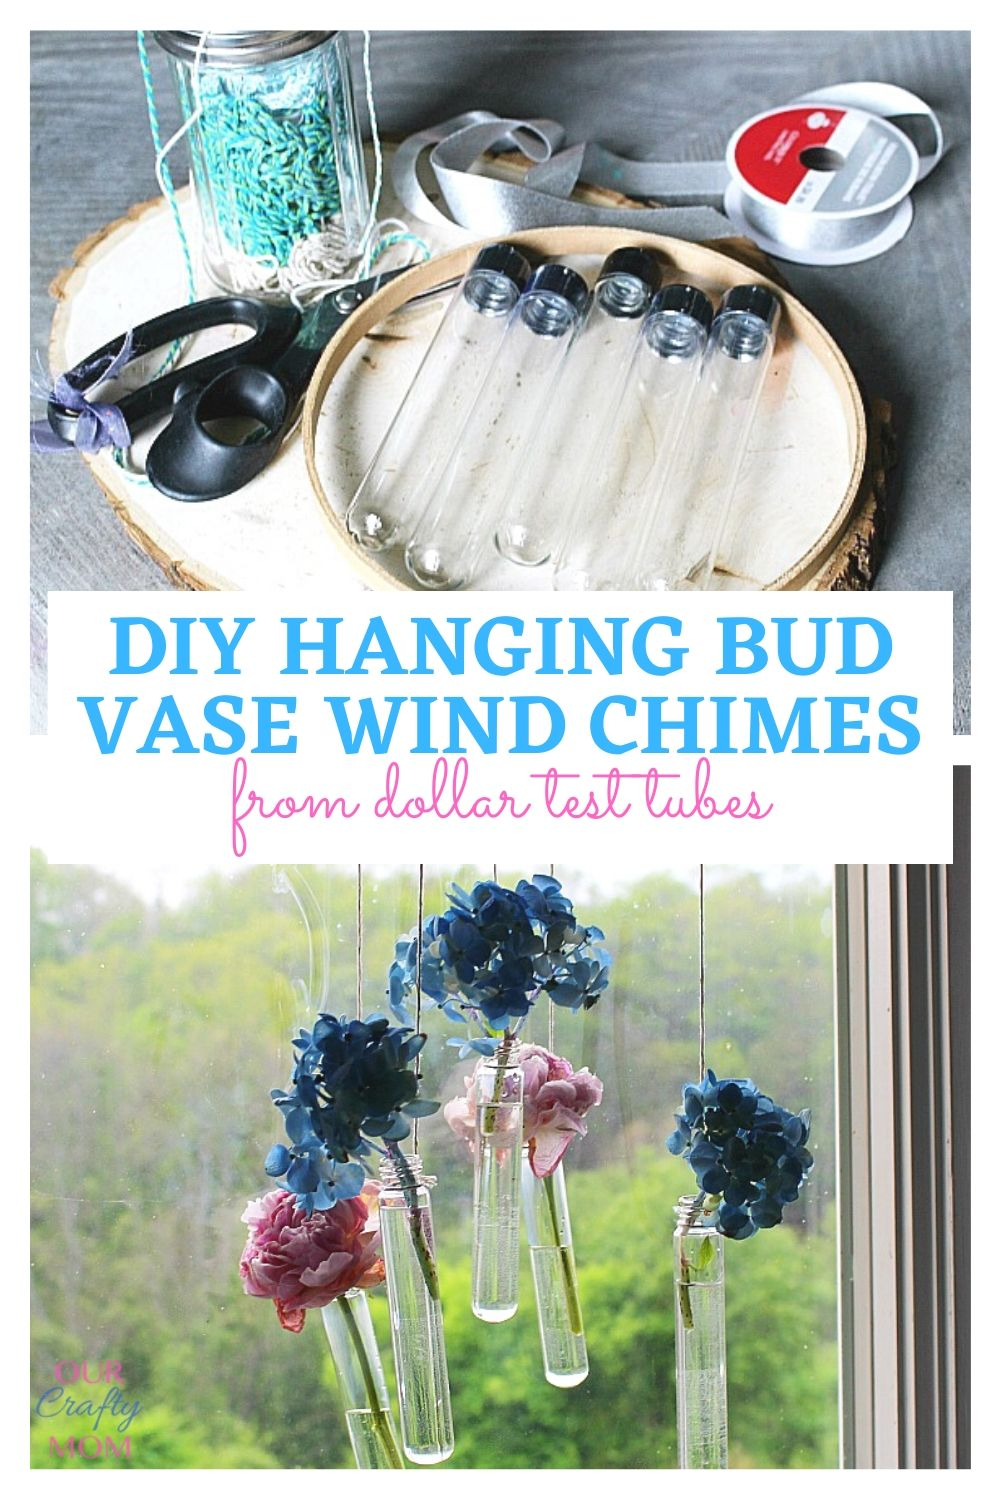 Hanging bud vase wind chimes